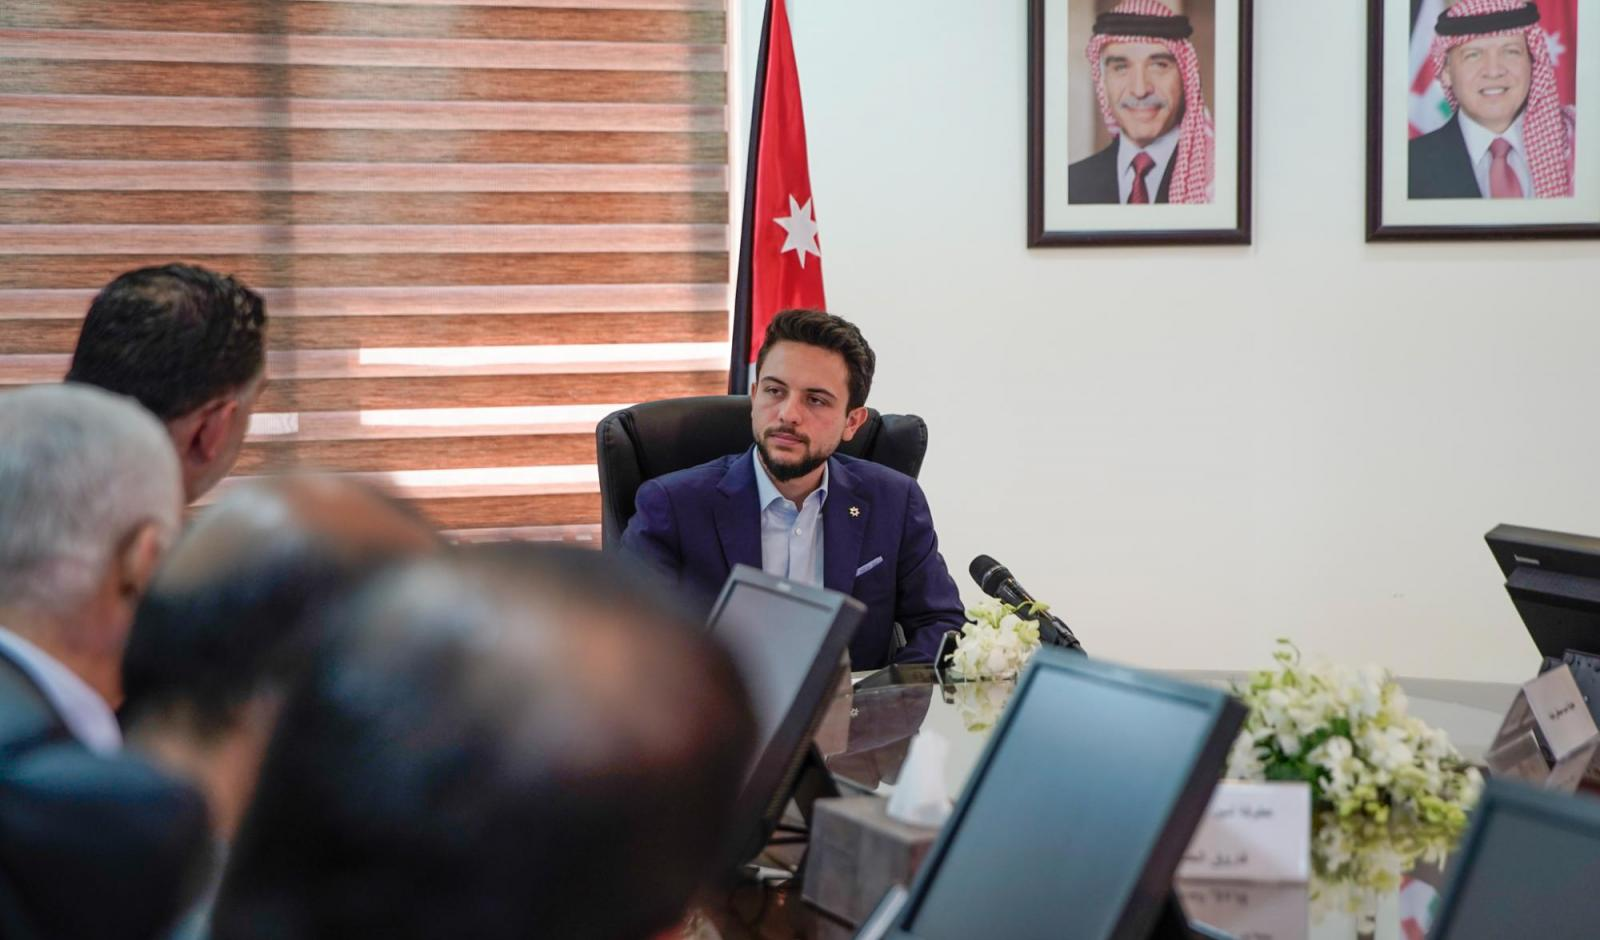 Crown Prince visits labour ministry, says His Majesty's directives call for impactful employment plans